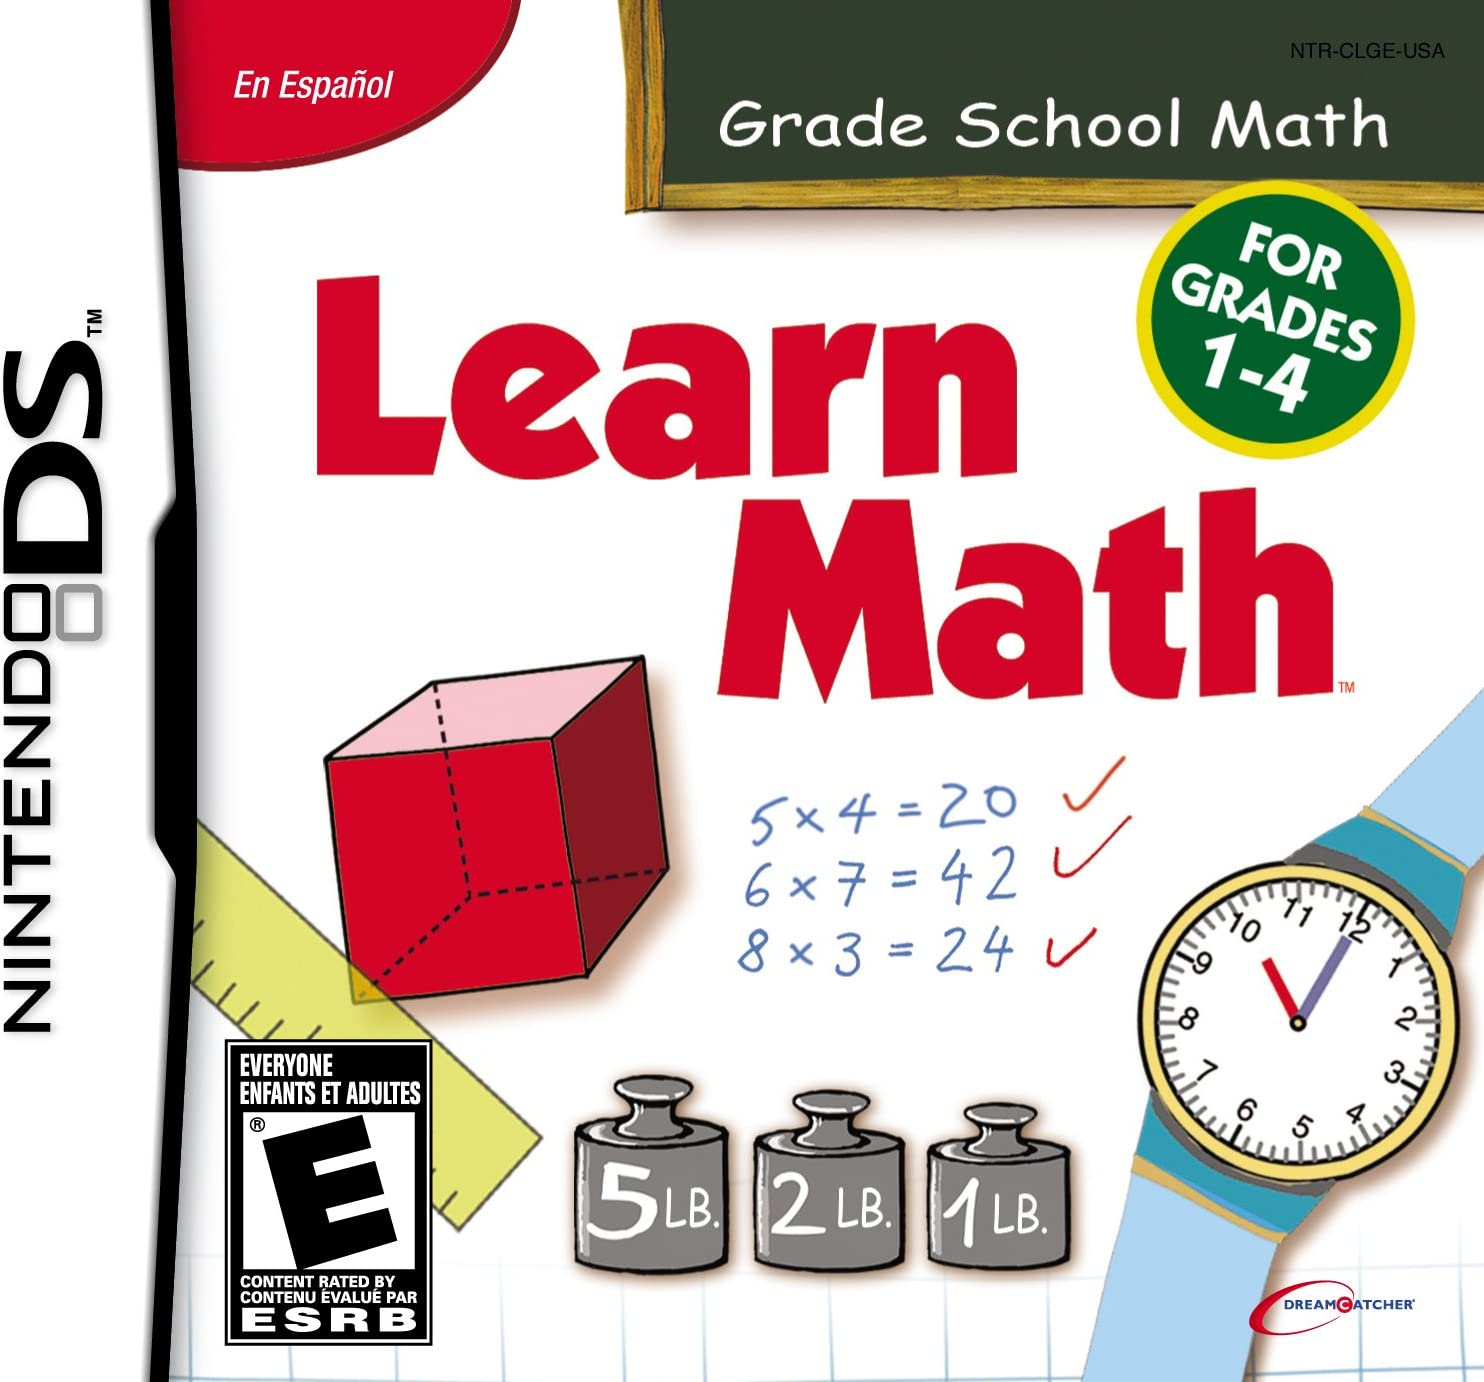 Amazon.com: Learn Math - Nintendo DS: Artist Not Provided: Video Games